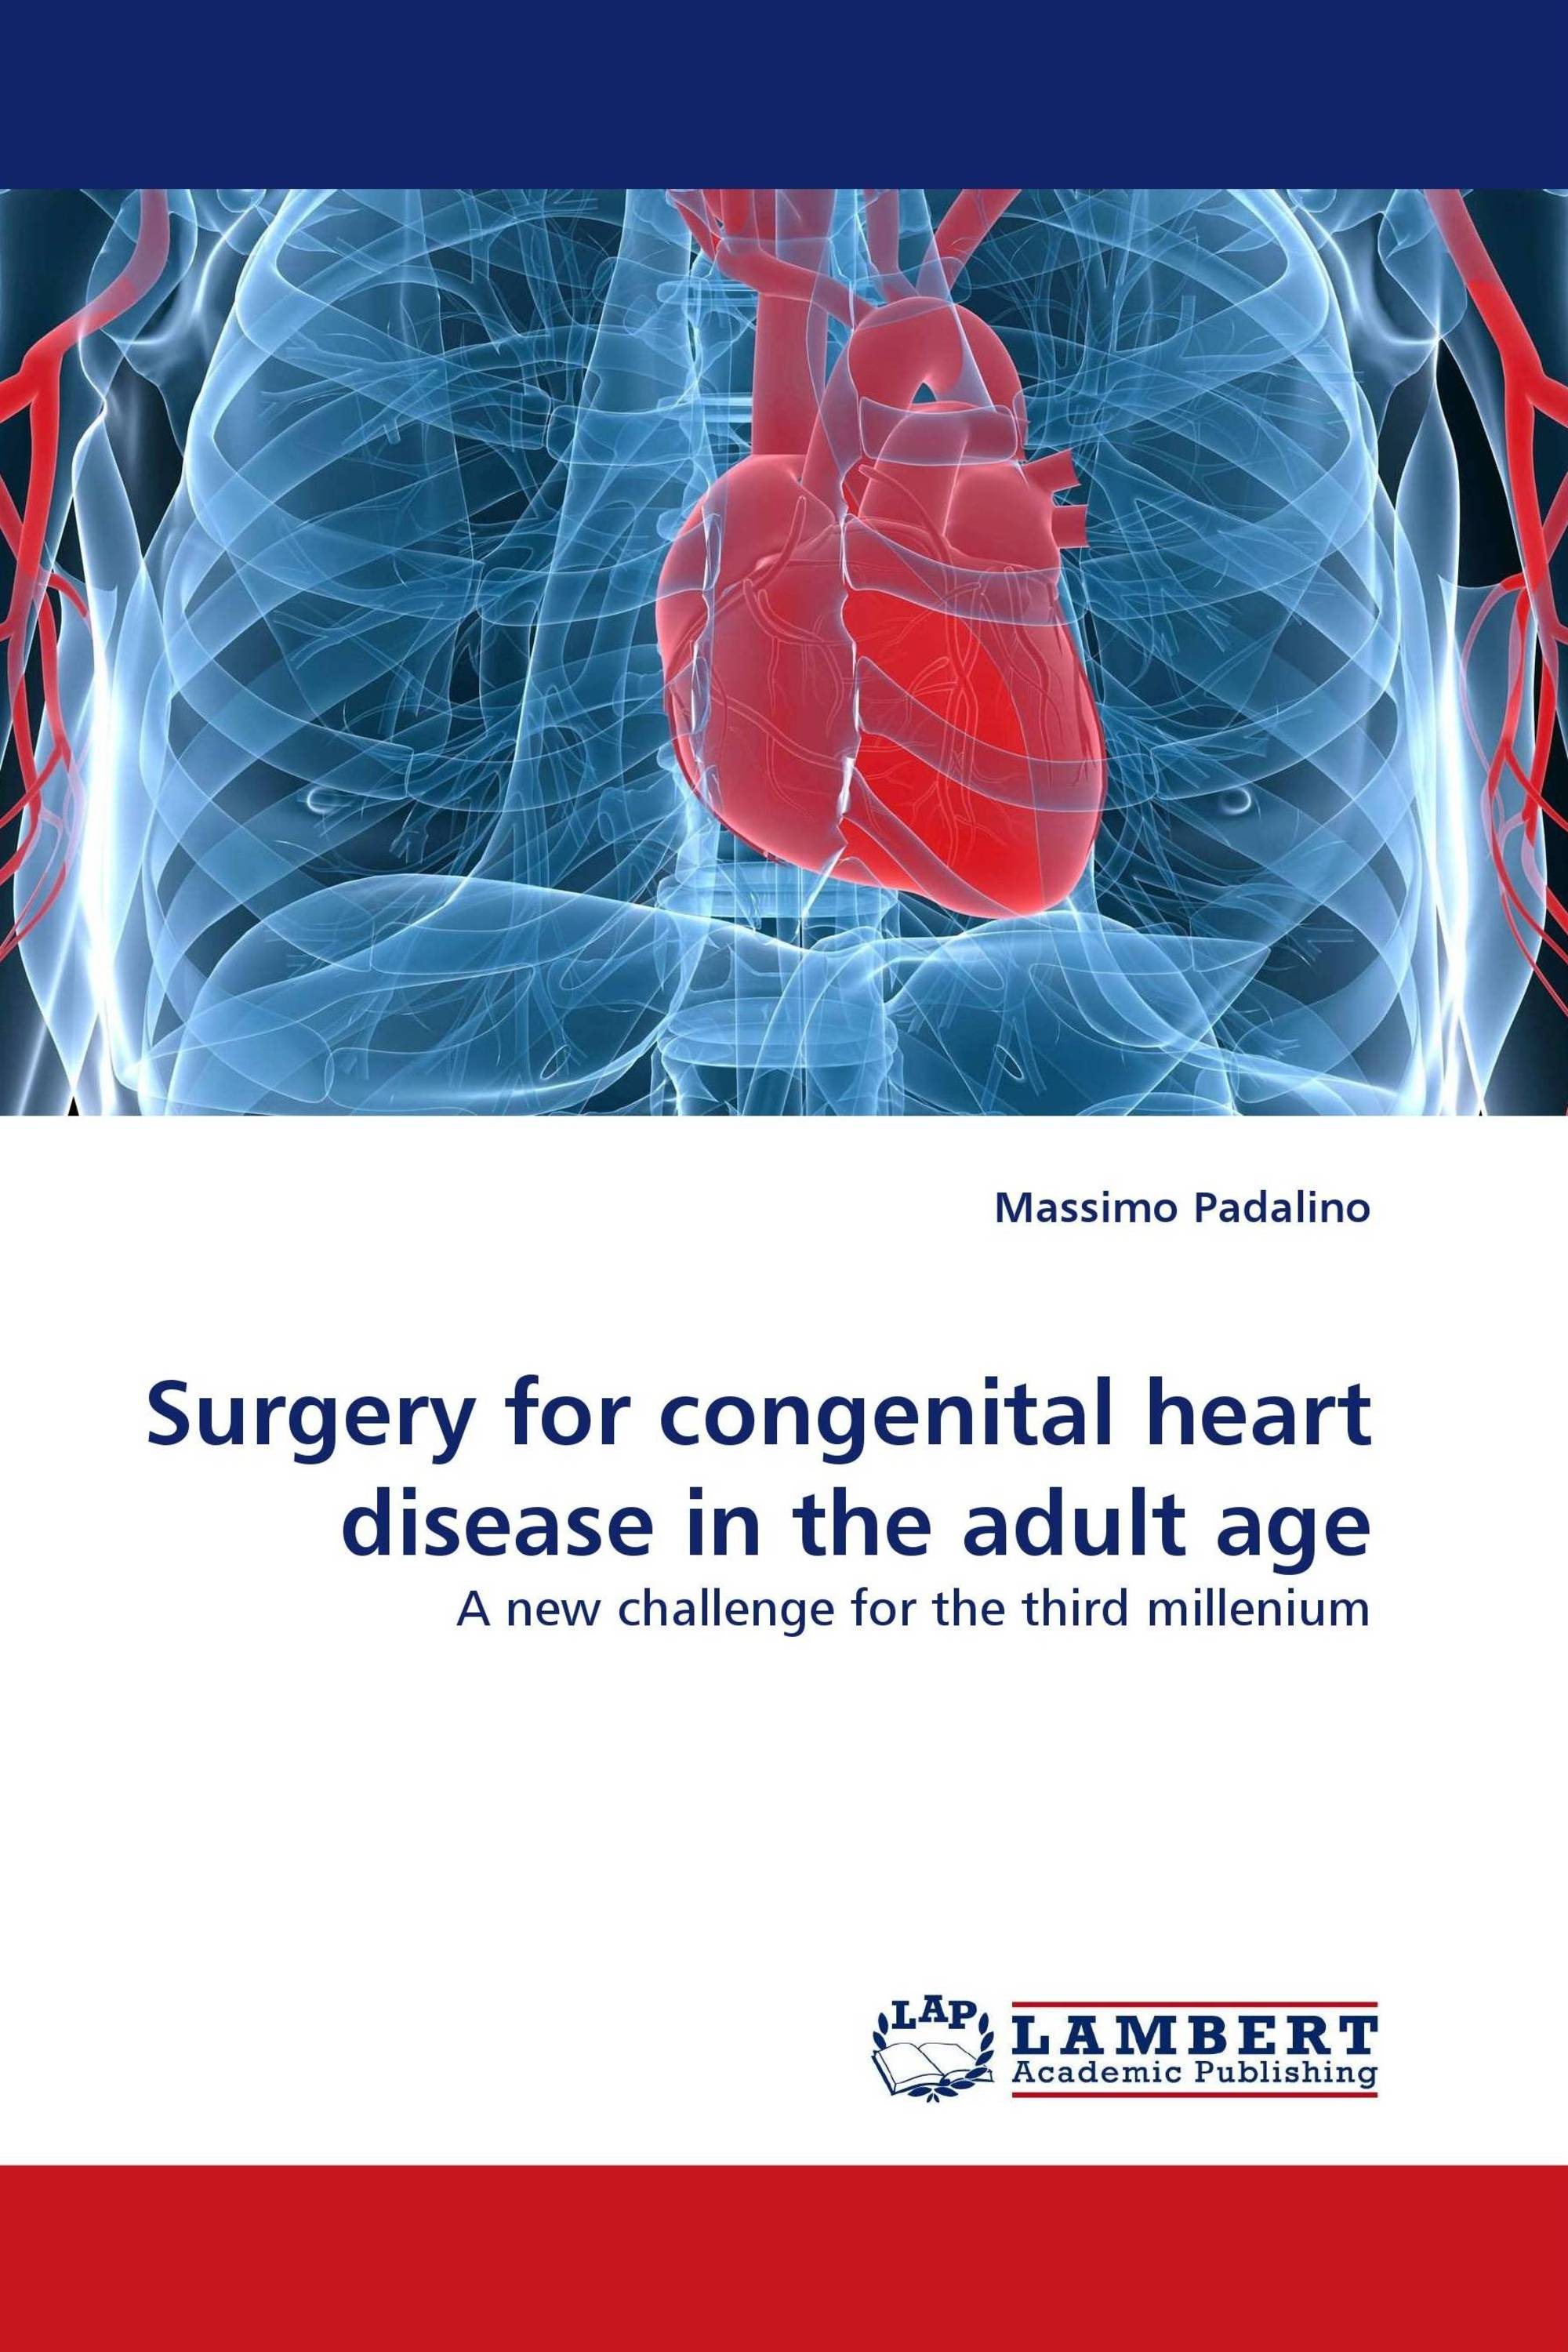 congenital heart disease in children - HD 800×1200